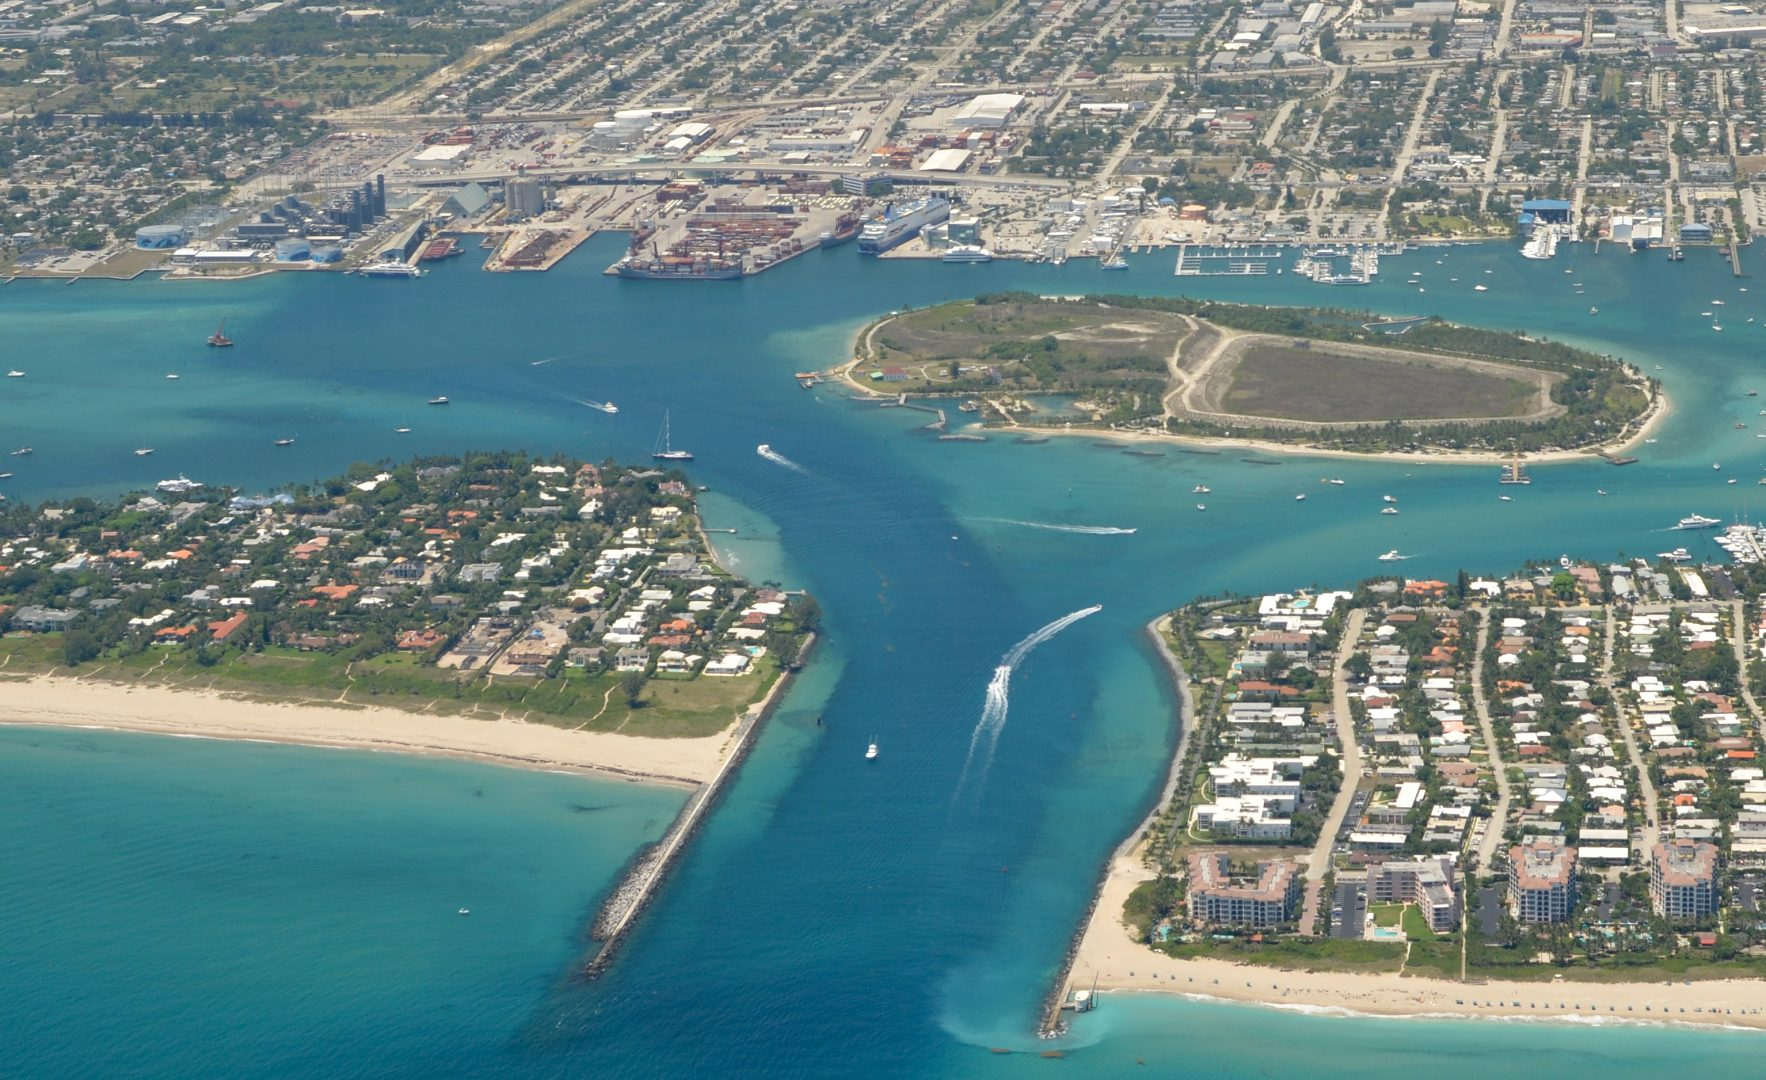 Peanut Island, West Palm Beach, U.S.A.